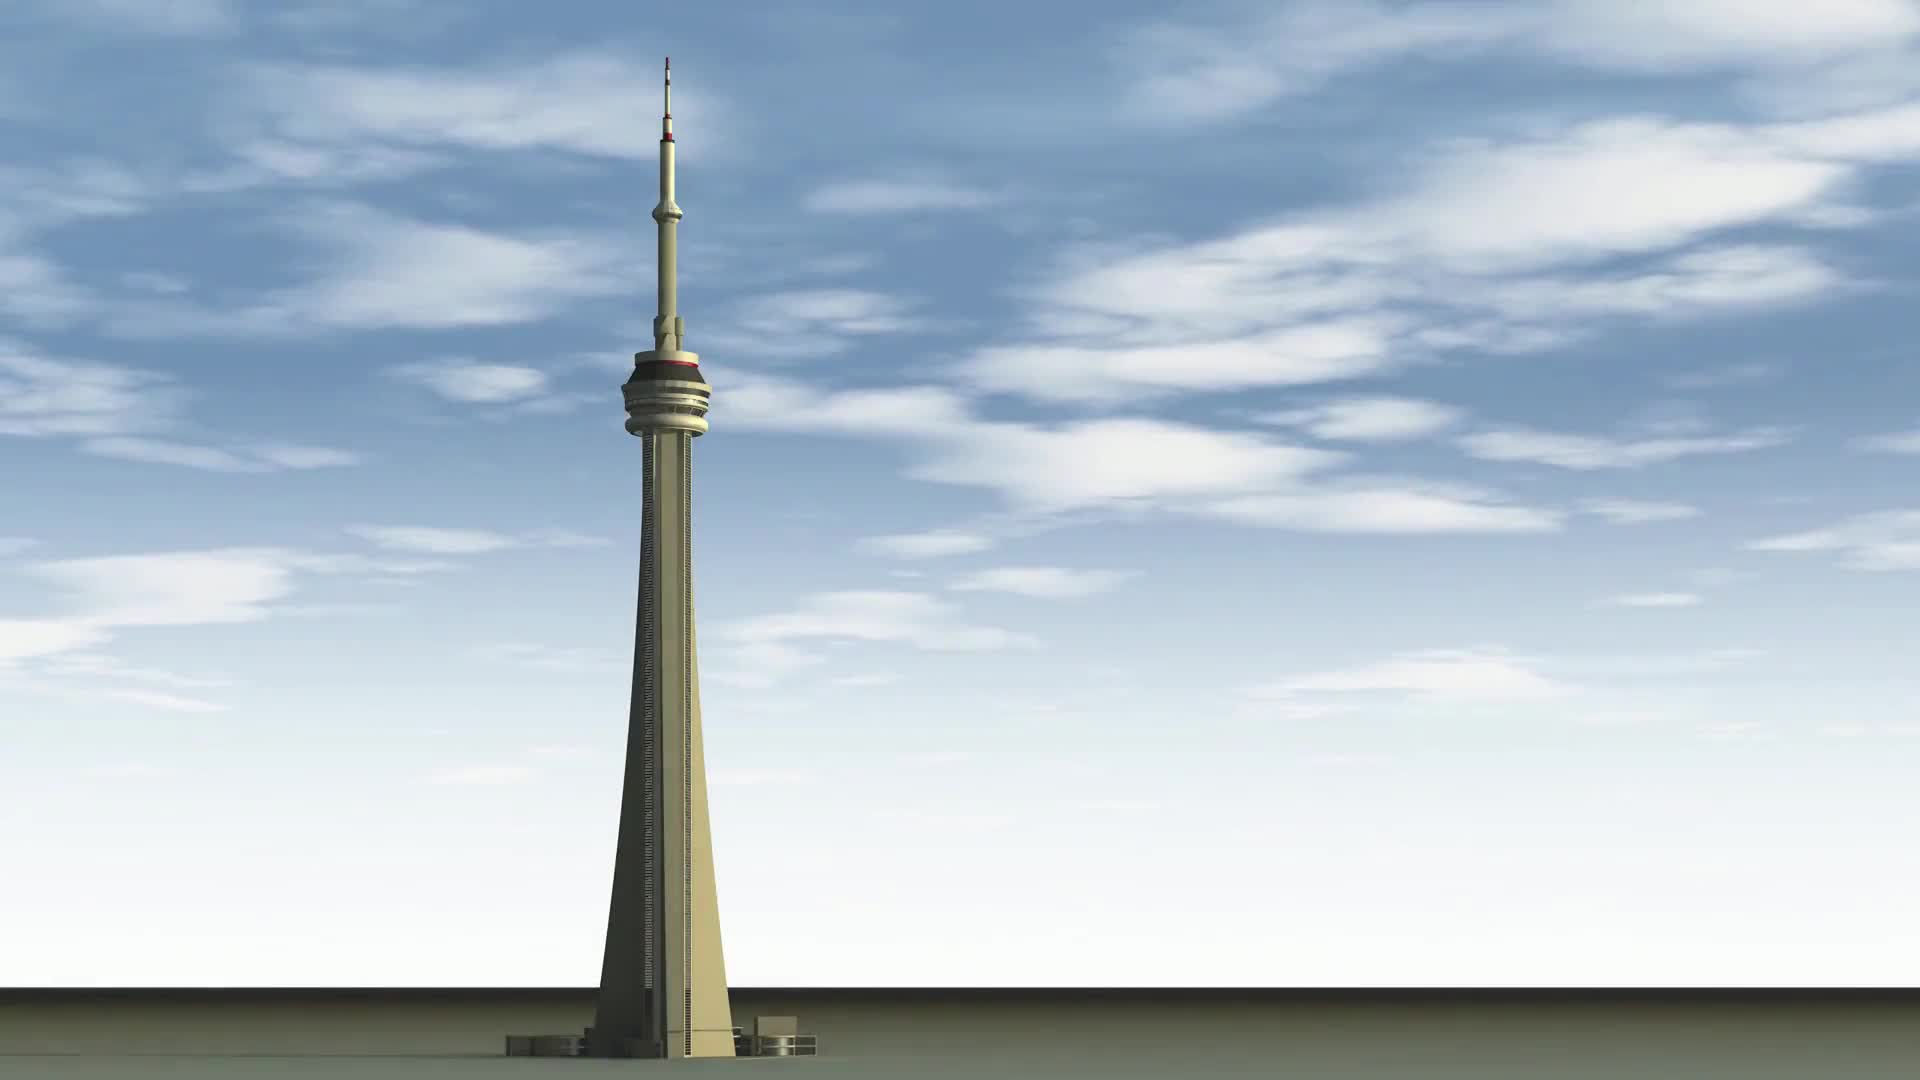 Cn tower tower toronto art culture